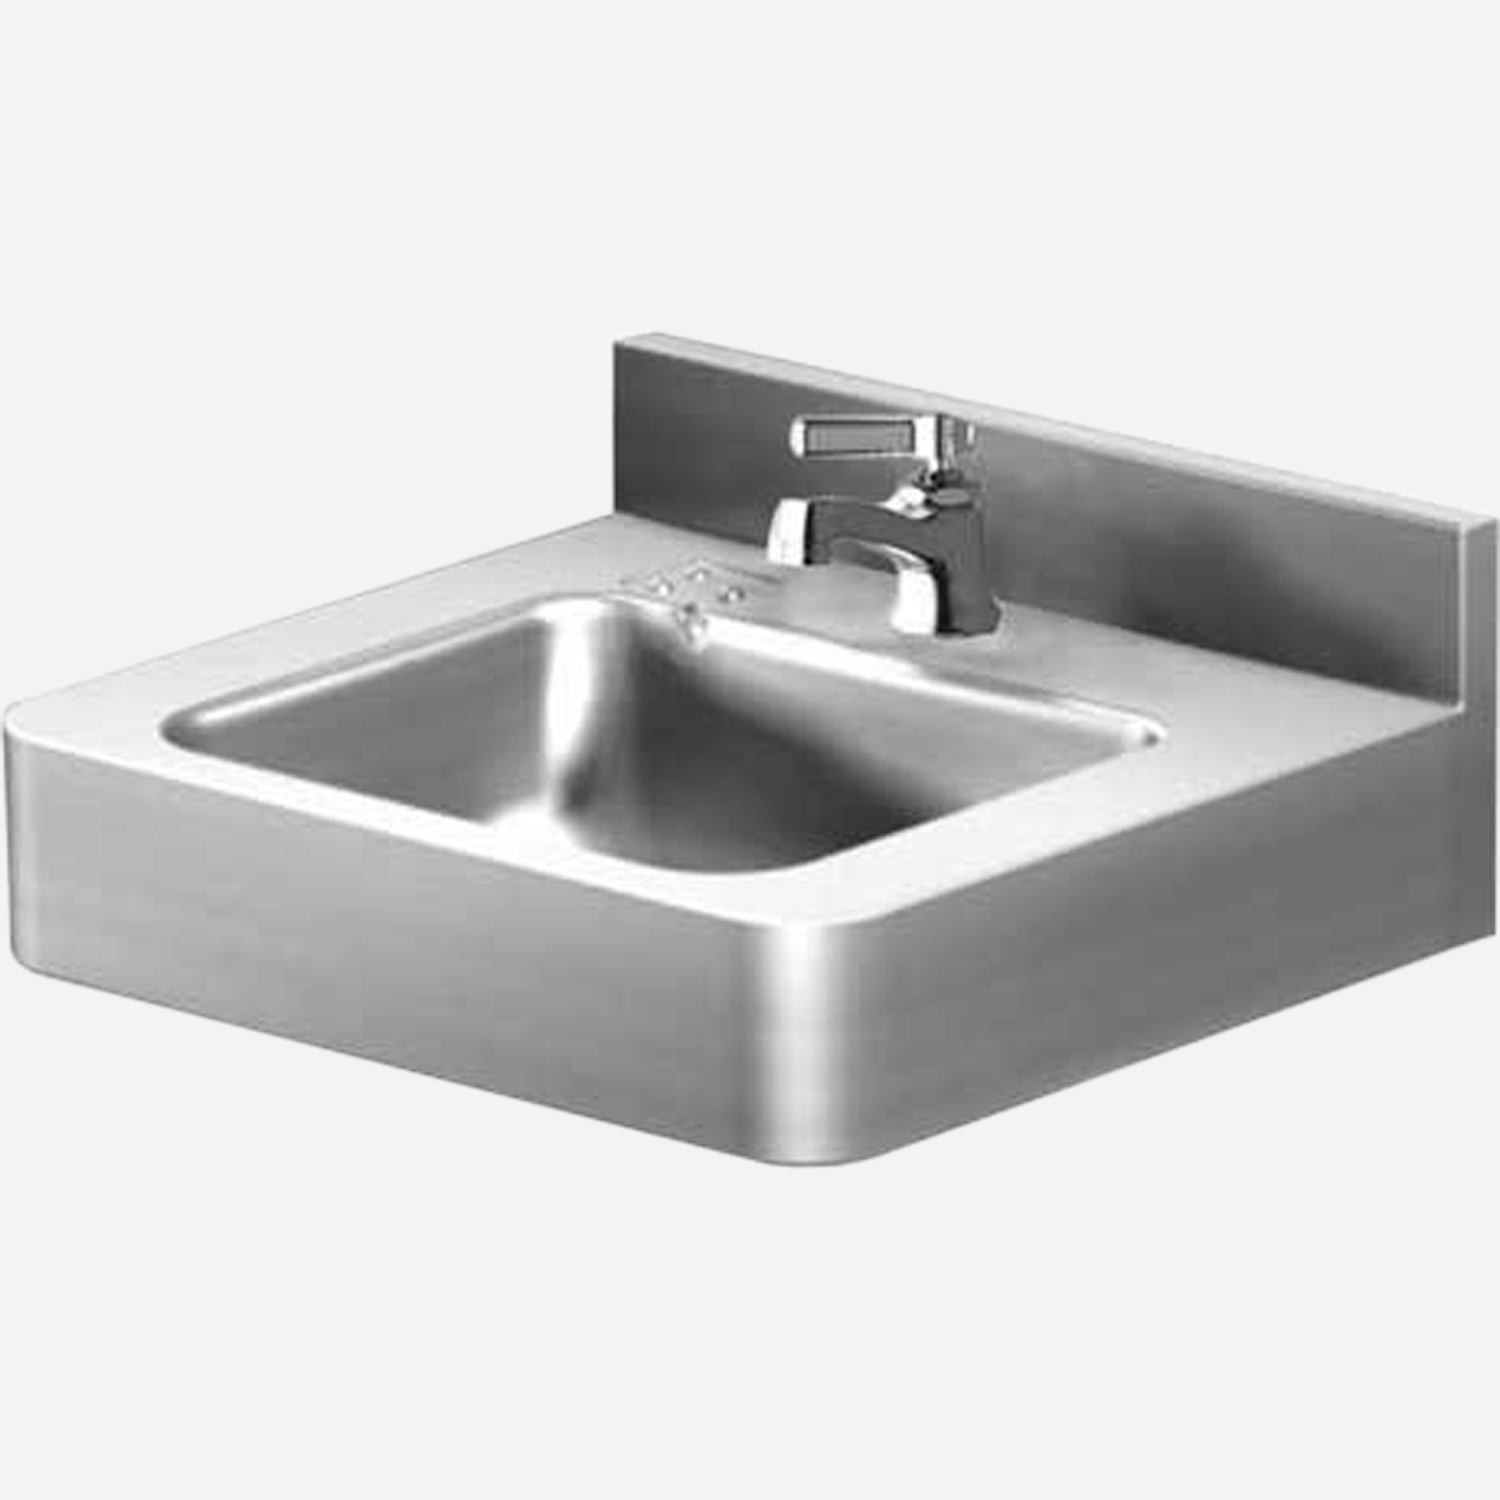 Stainless Steel Lavatories and Valves